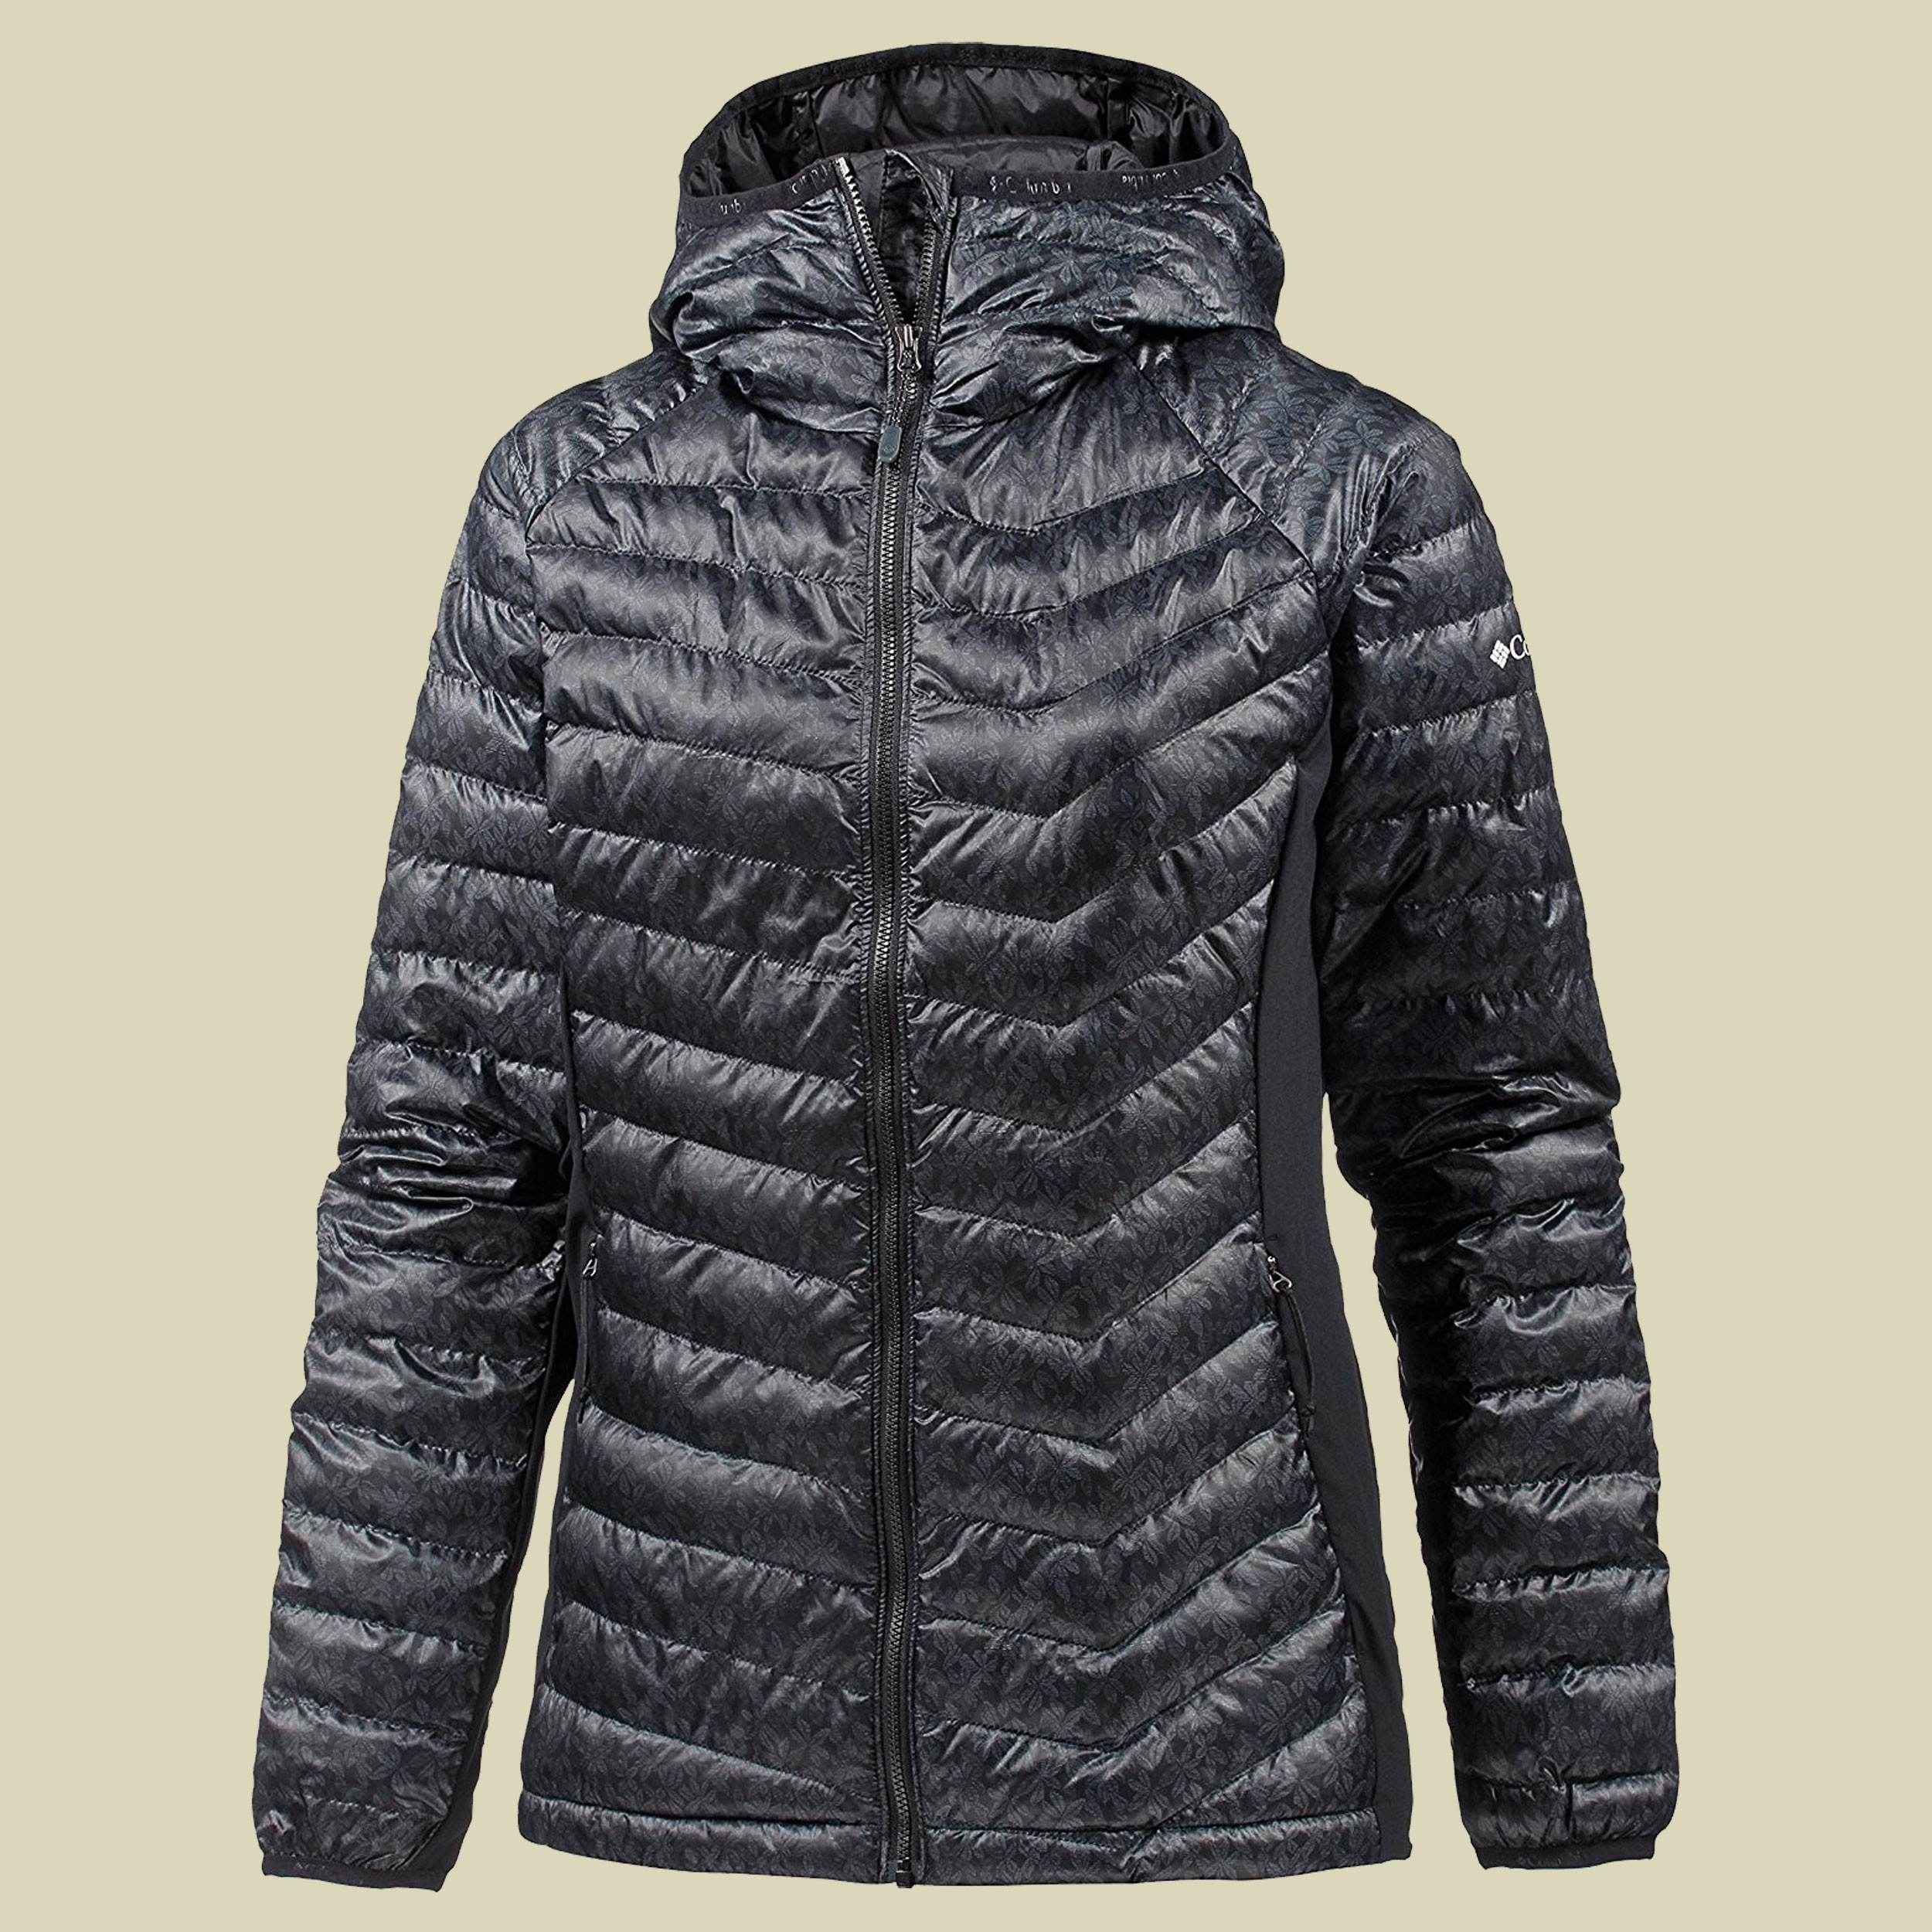 Powder Lite Hybrid Hooded Jacket Women